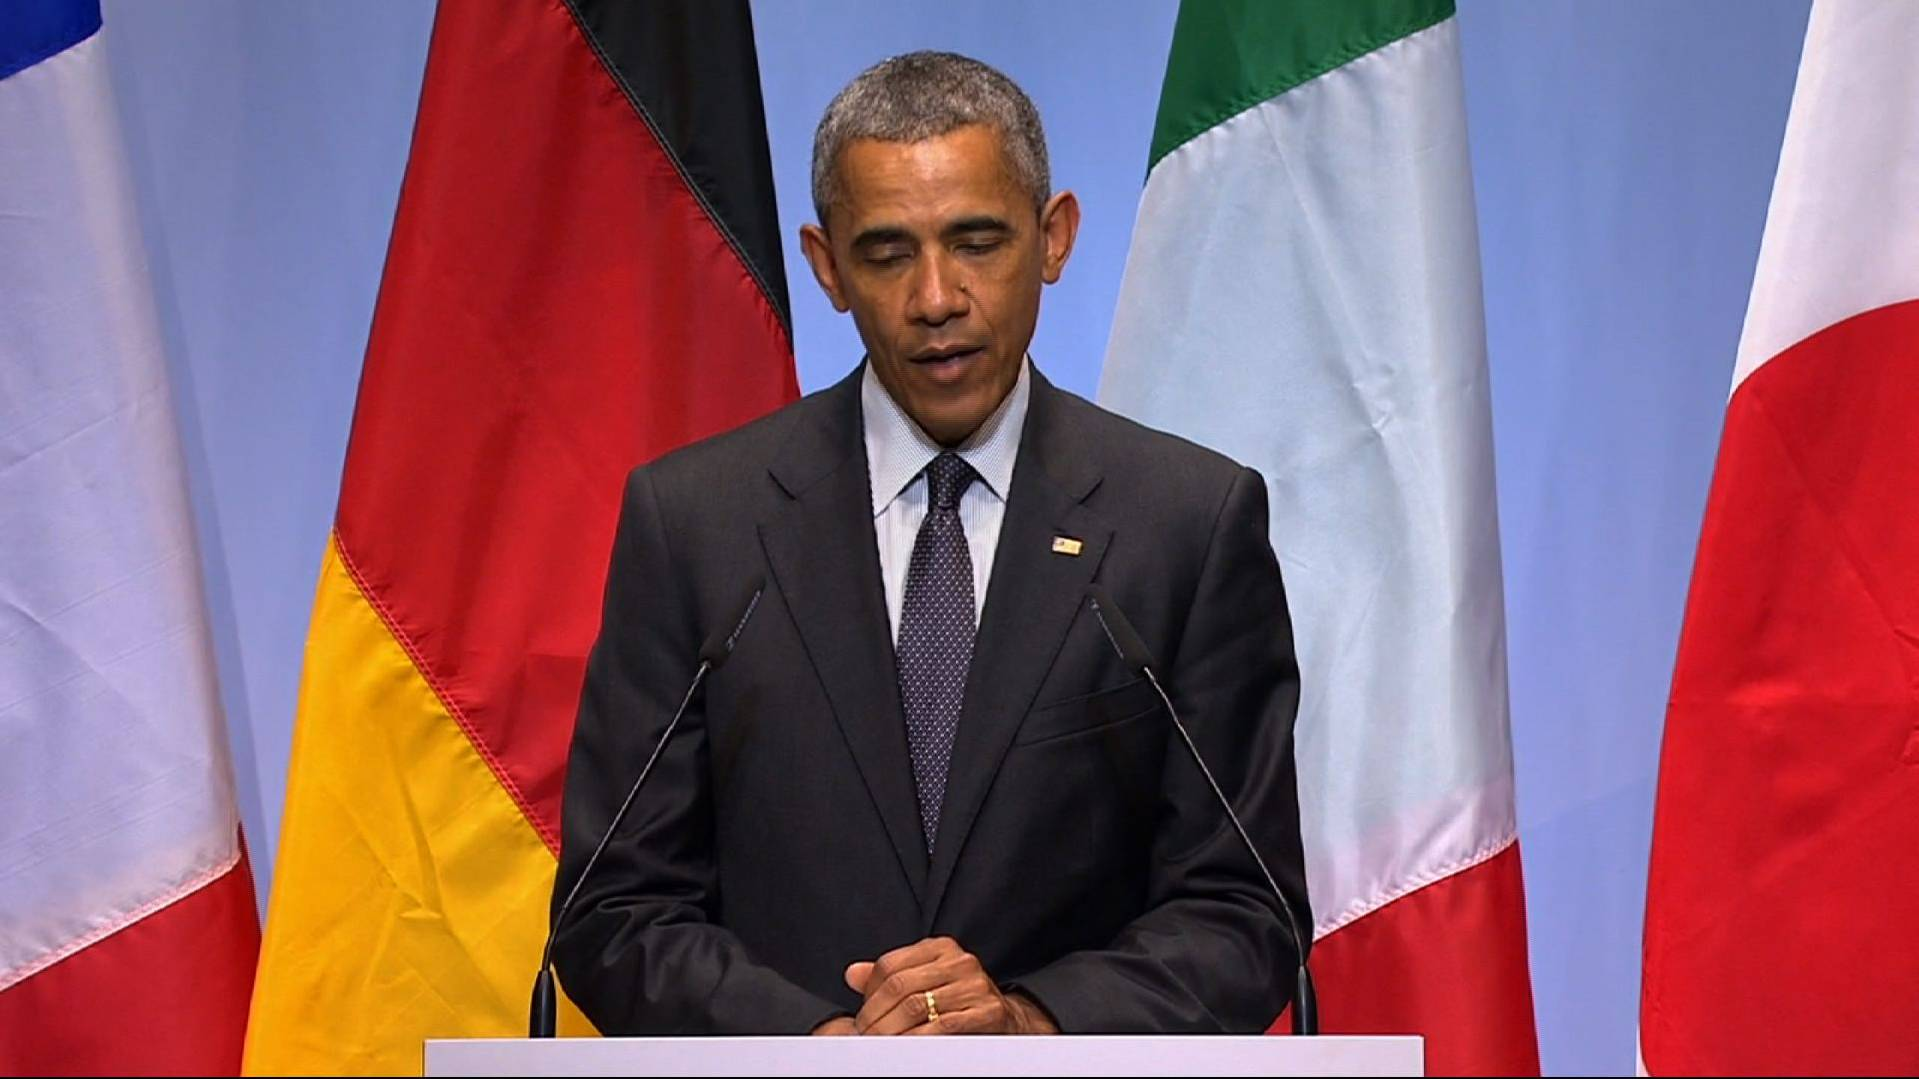 Obama: Cyberattack Attempts Will Accelerate